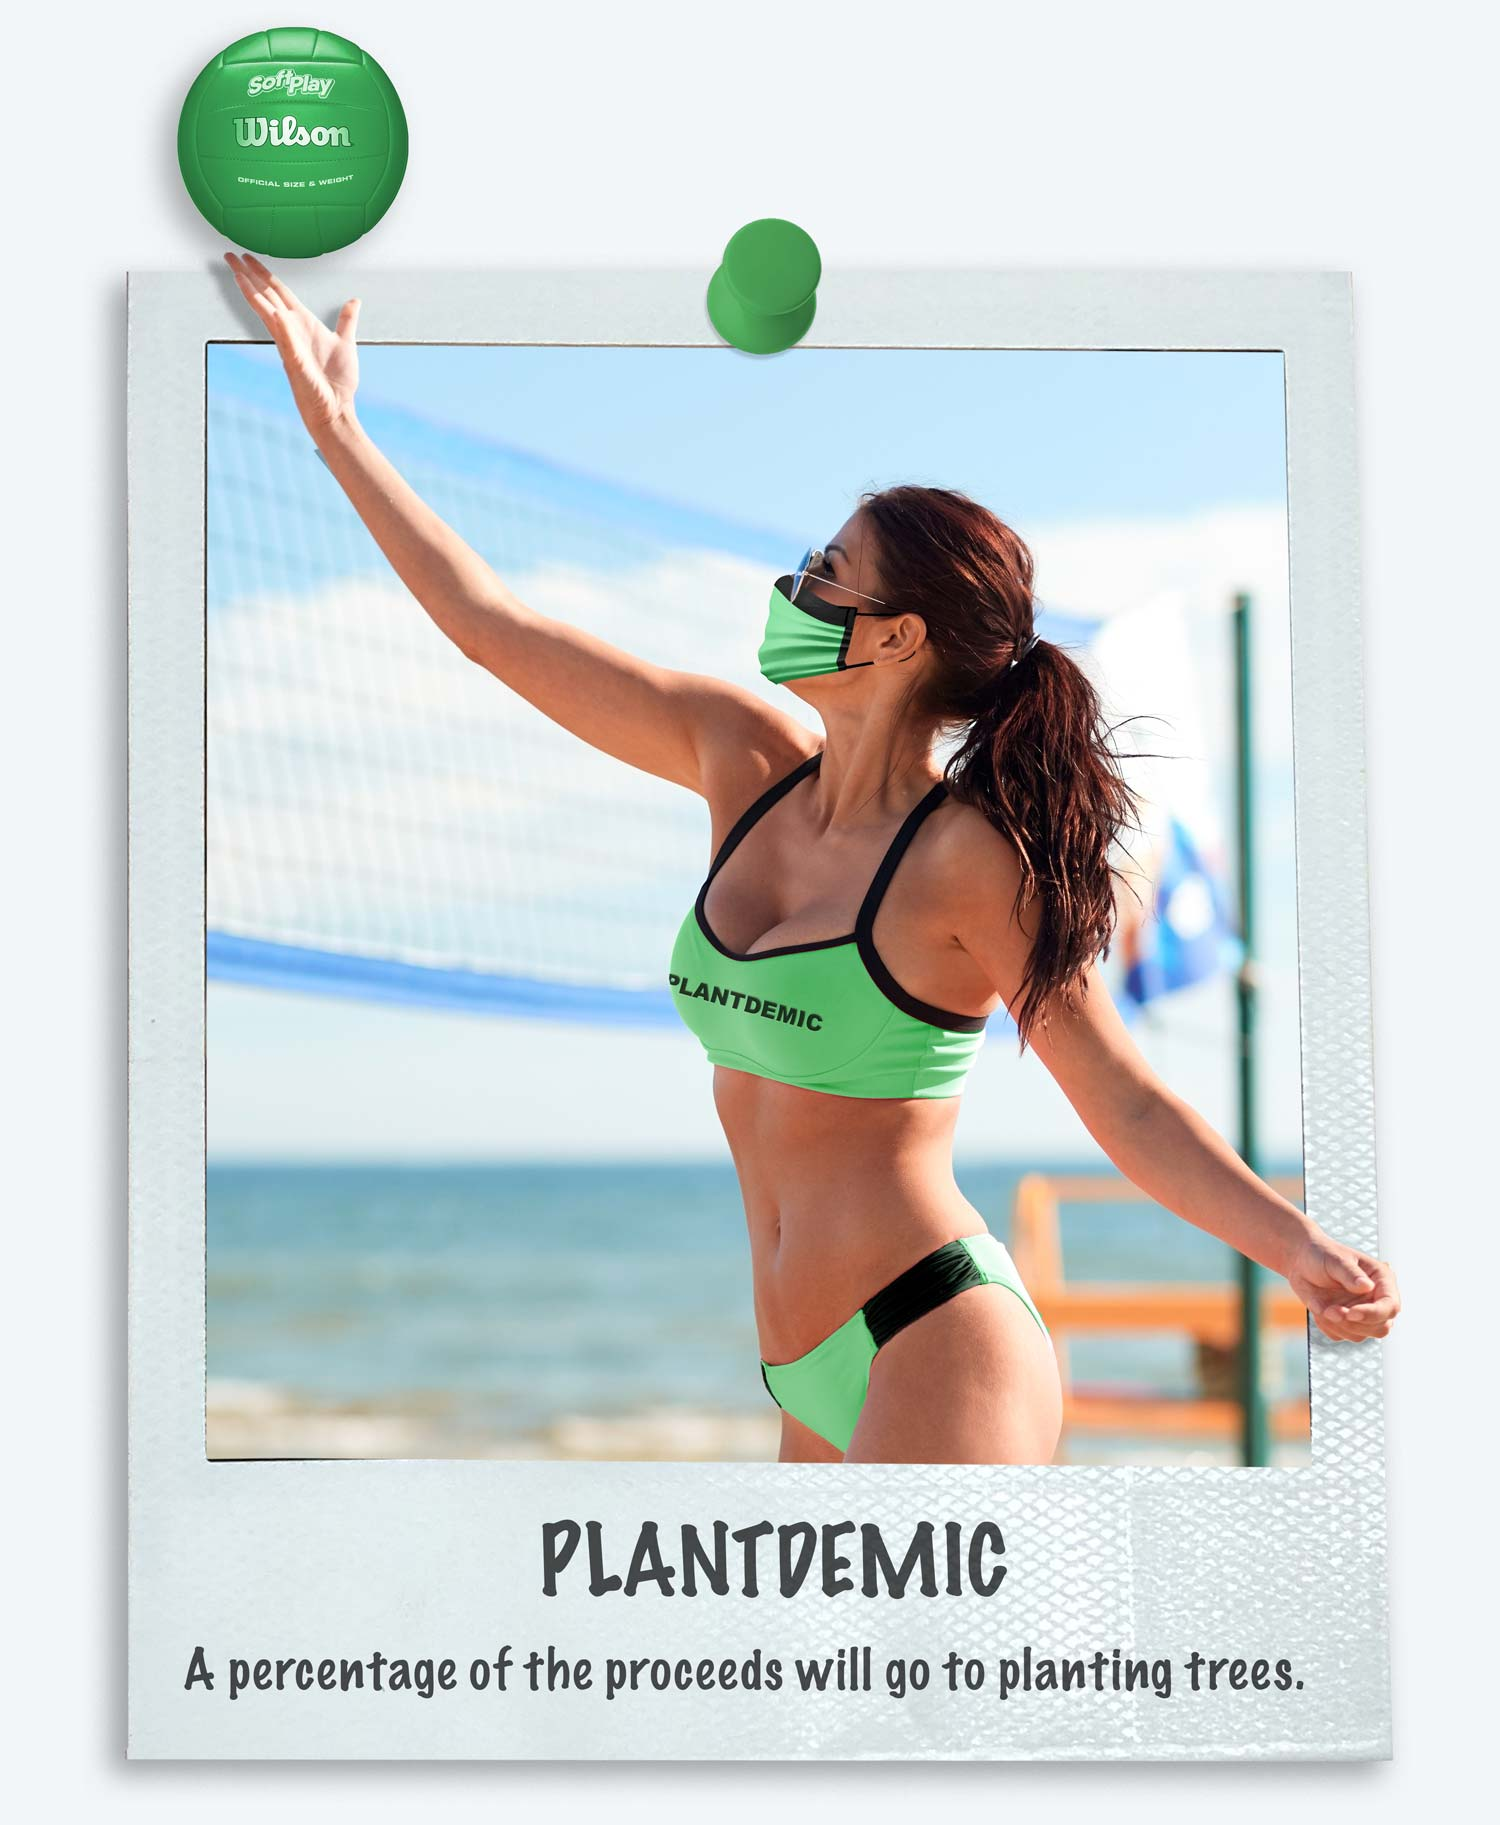 Women wearing our Plantdemic green bikini. Text states that a percentage of the proceeds from this particular bikini type will go towards planting trees.